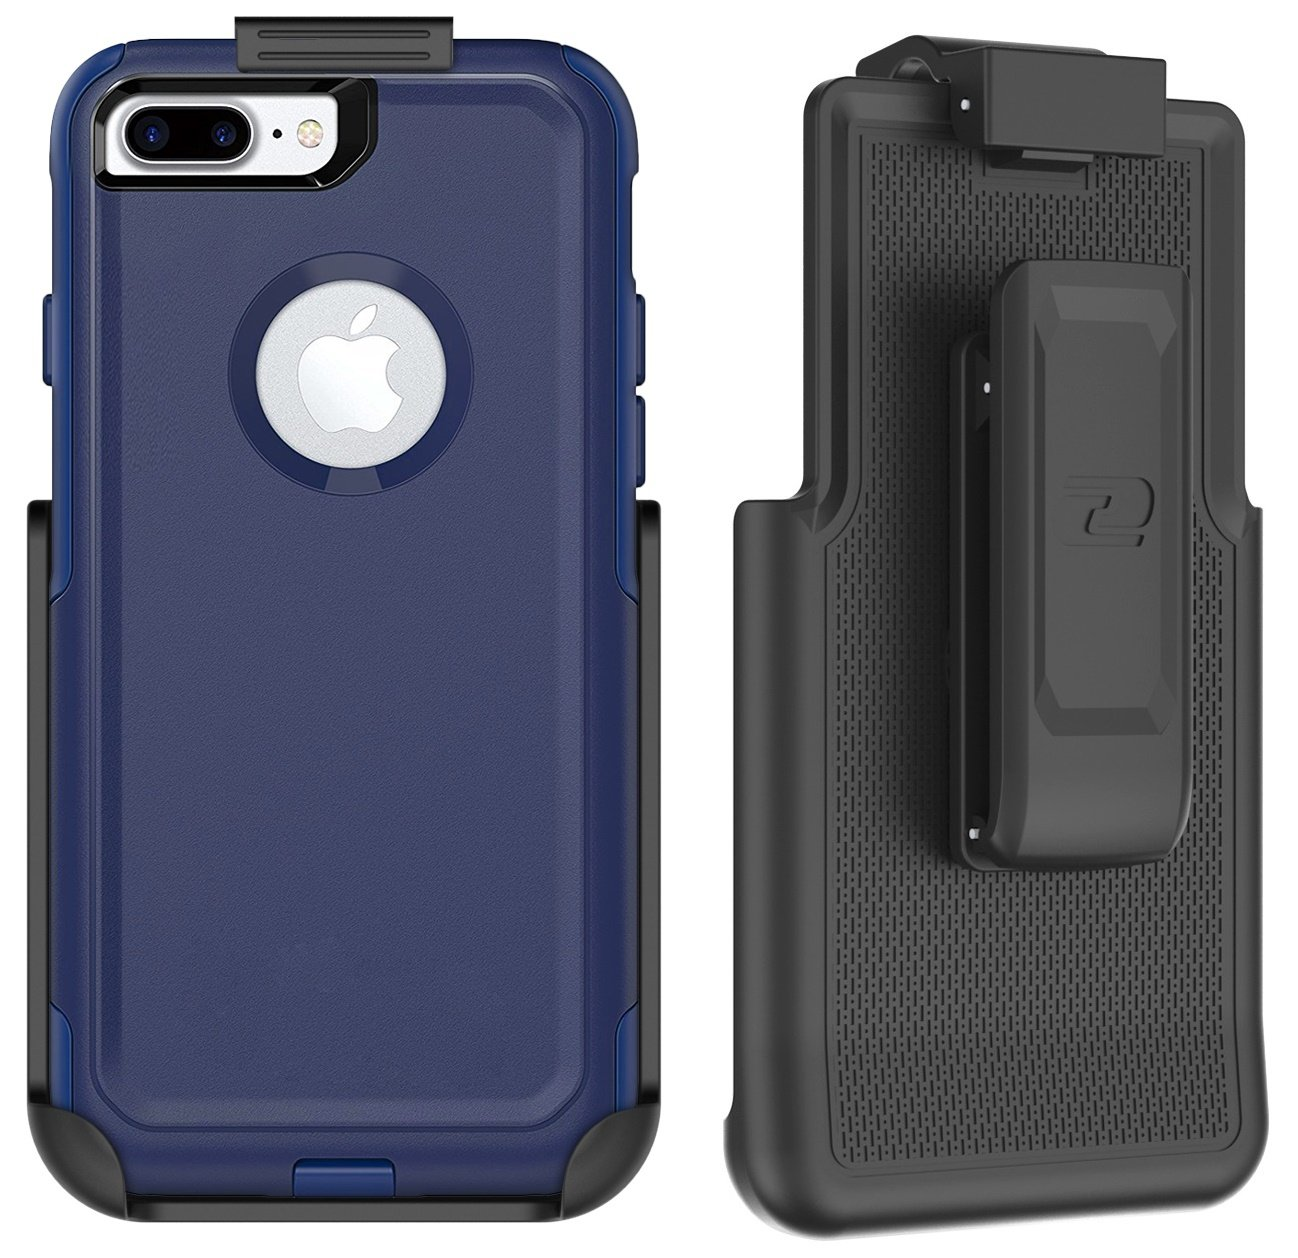 size 40 df27f 11621 Encased Belt Clip Holster for Otterbox Commuter Series Case - iPhone 7 Plus  5.5